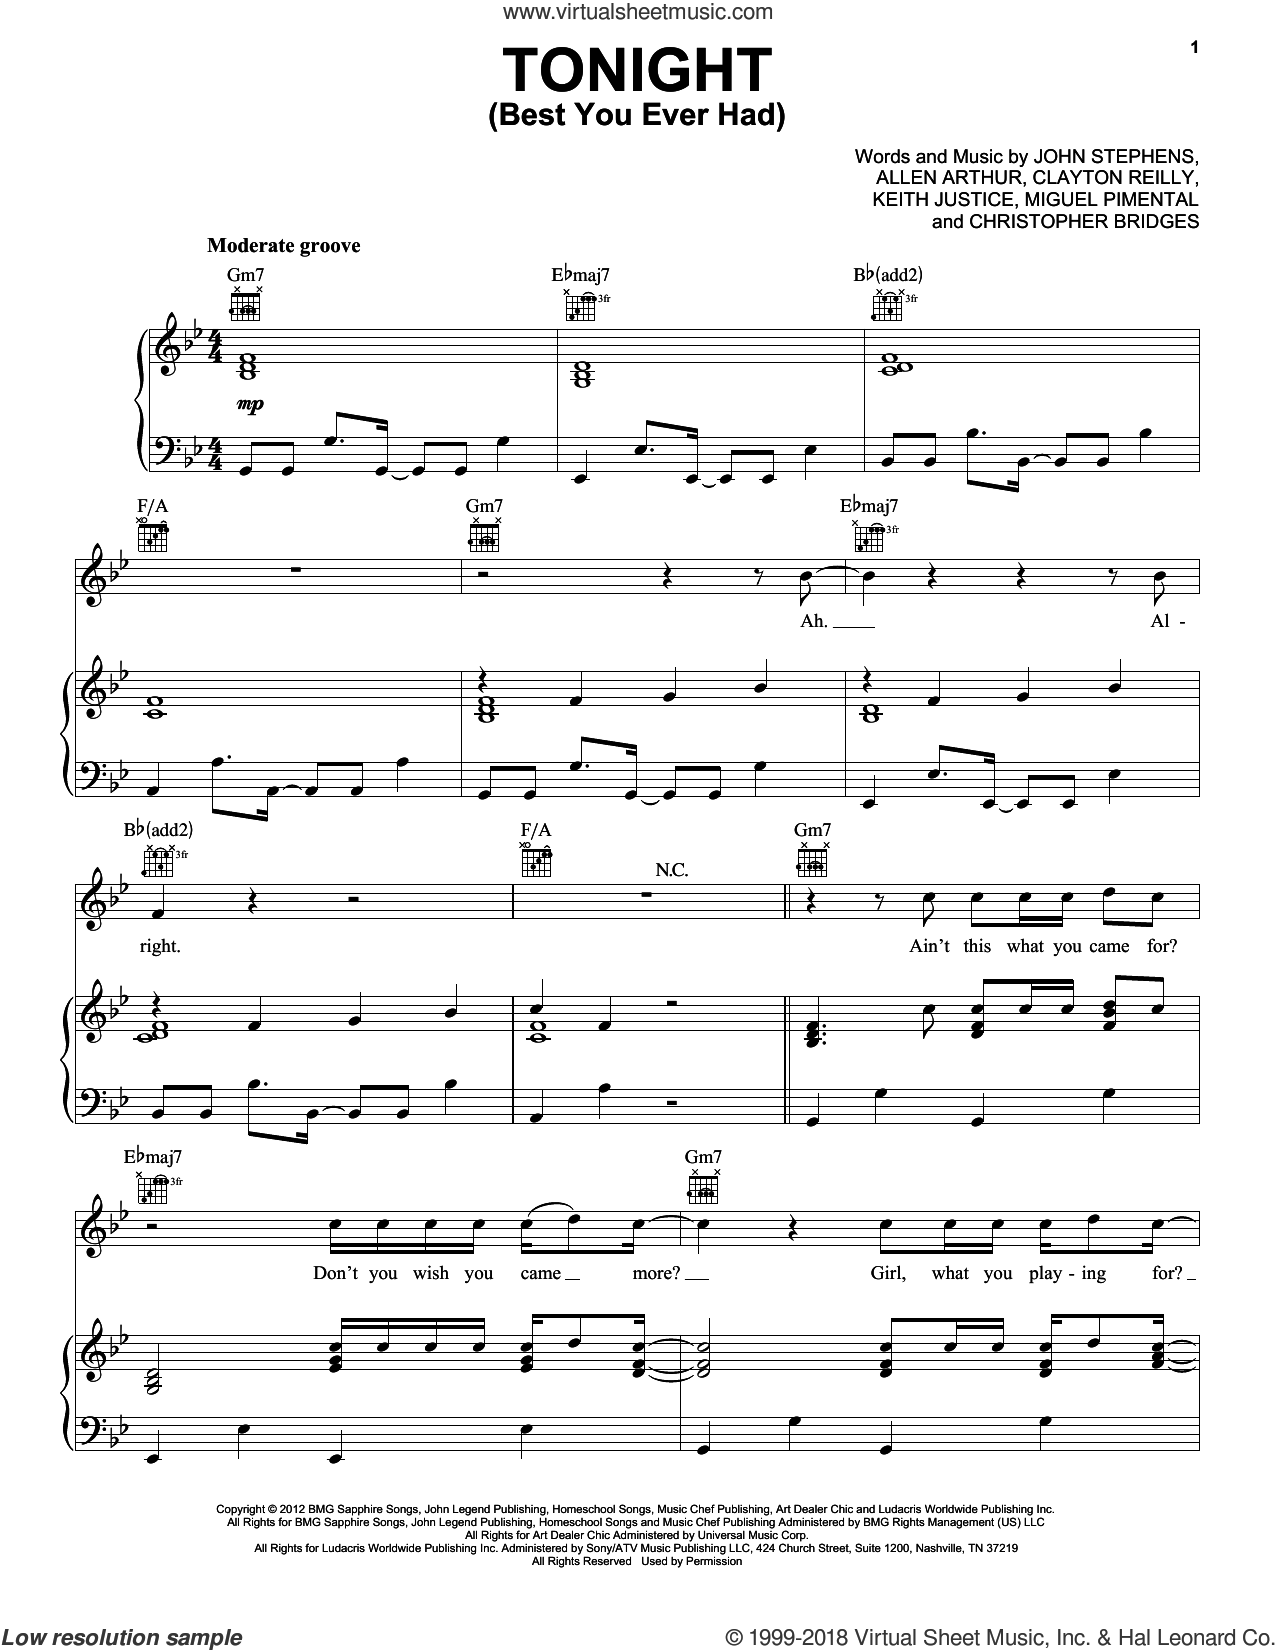 Tonight (Best You Ever Had) sheet music for voice, piano or guitar by Miguel Pimental, John Legend, Christopher Bridges and John Stephens. Score Image Preview.